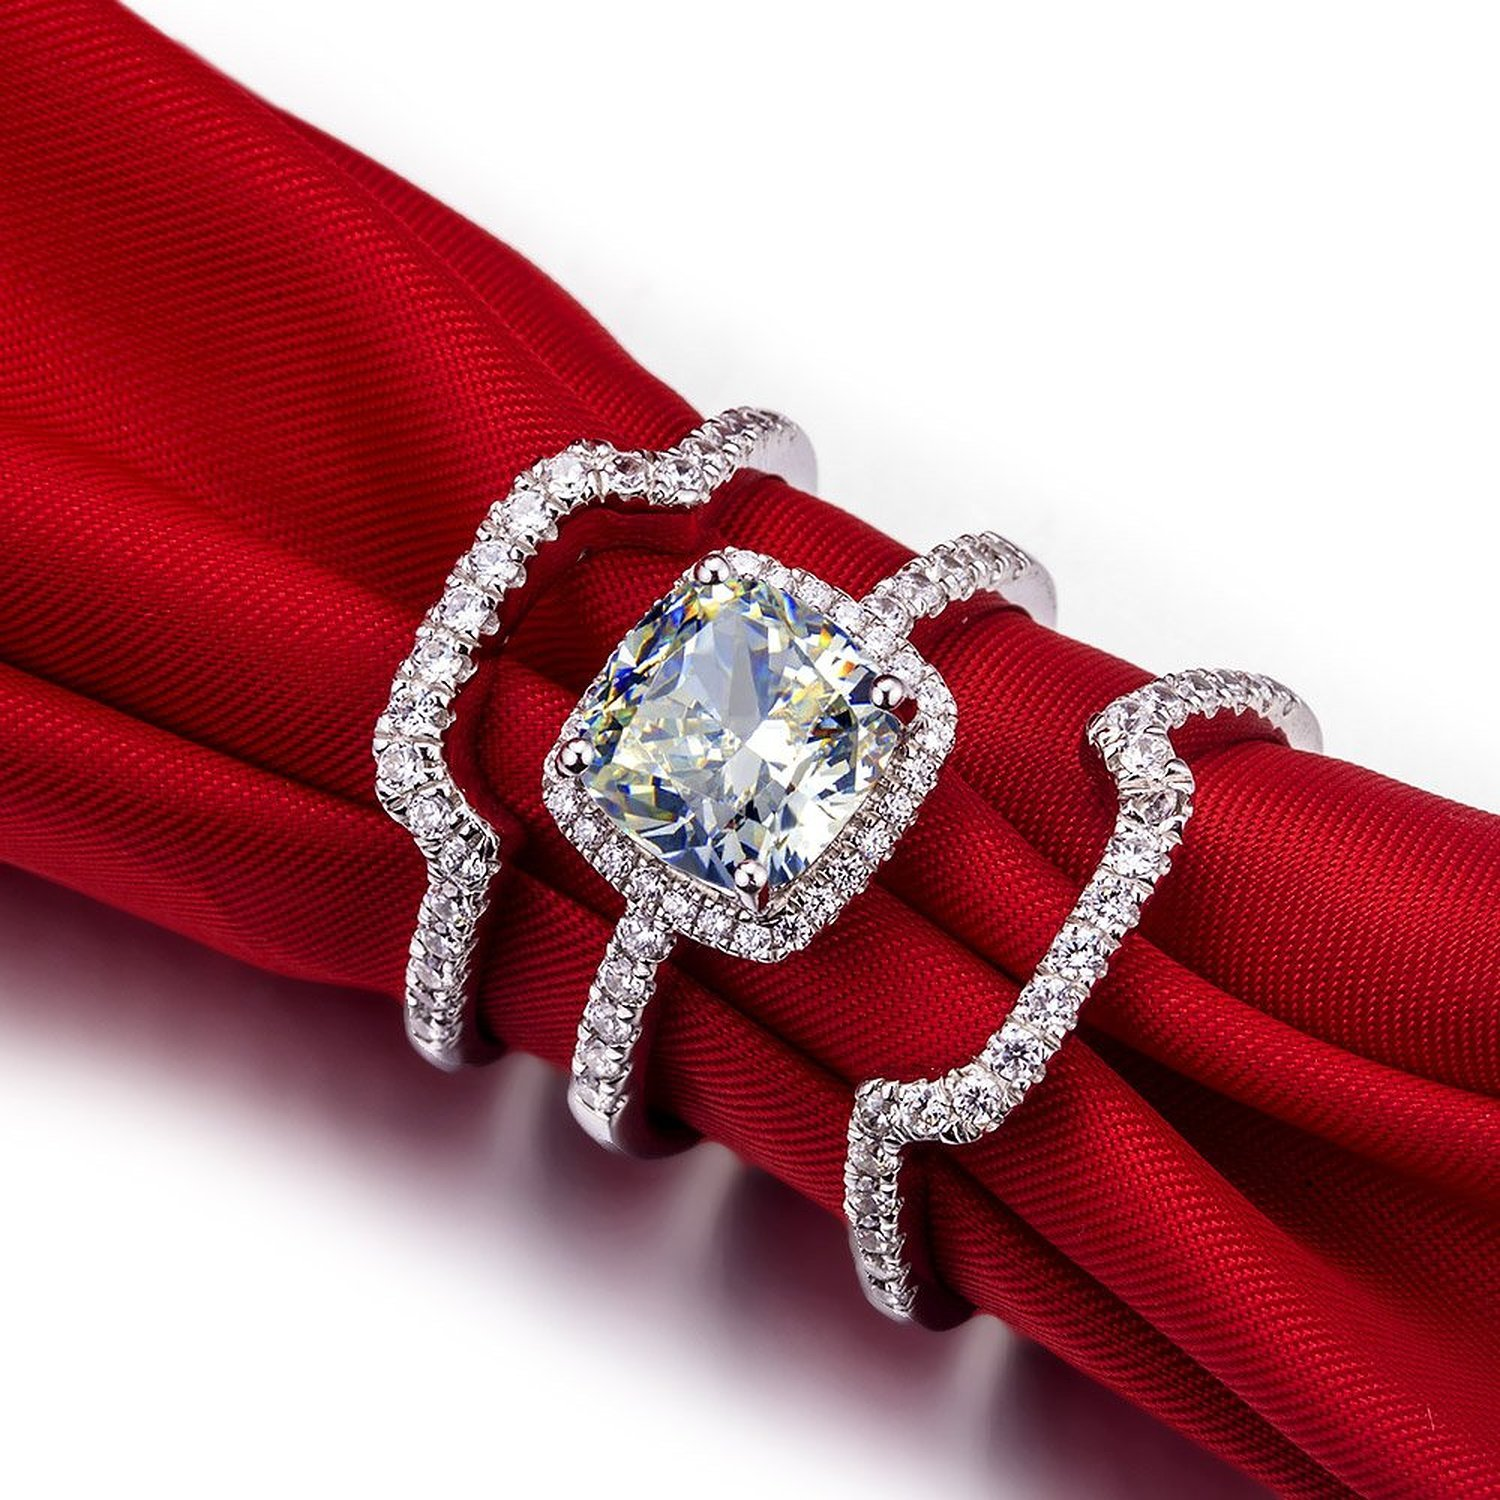 Inspirational Princess Cut Diamond Engagement Ring Hand